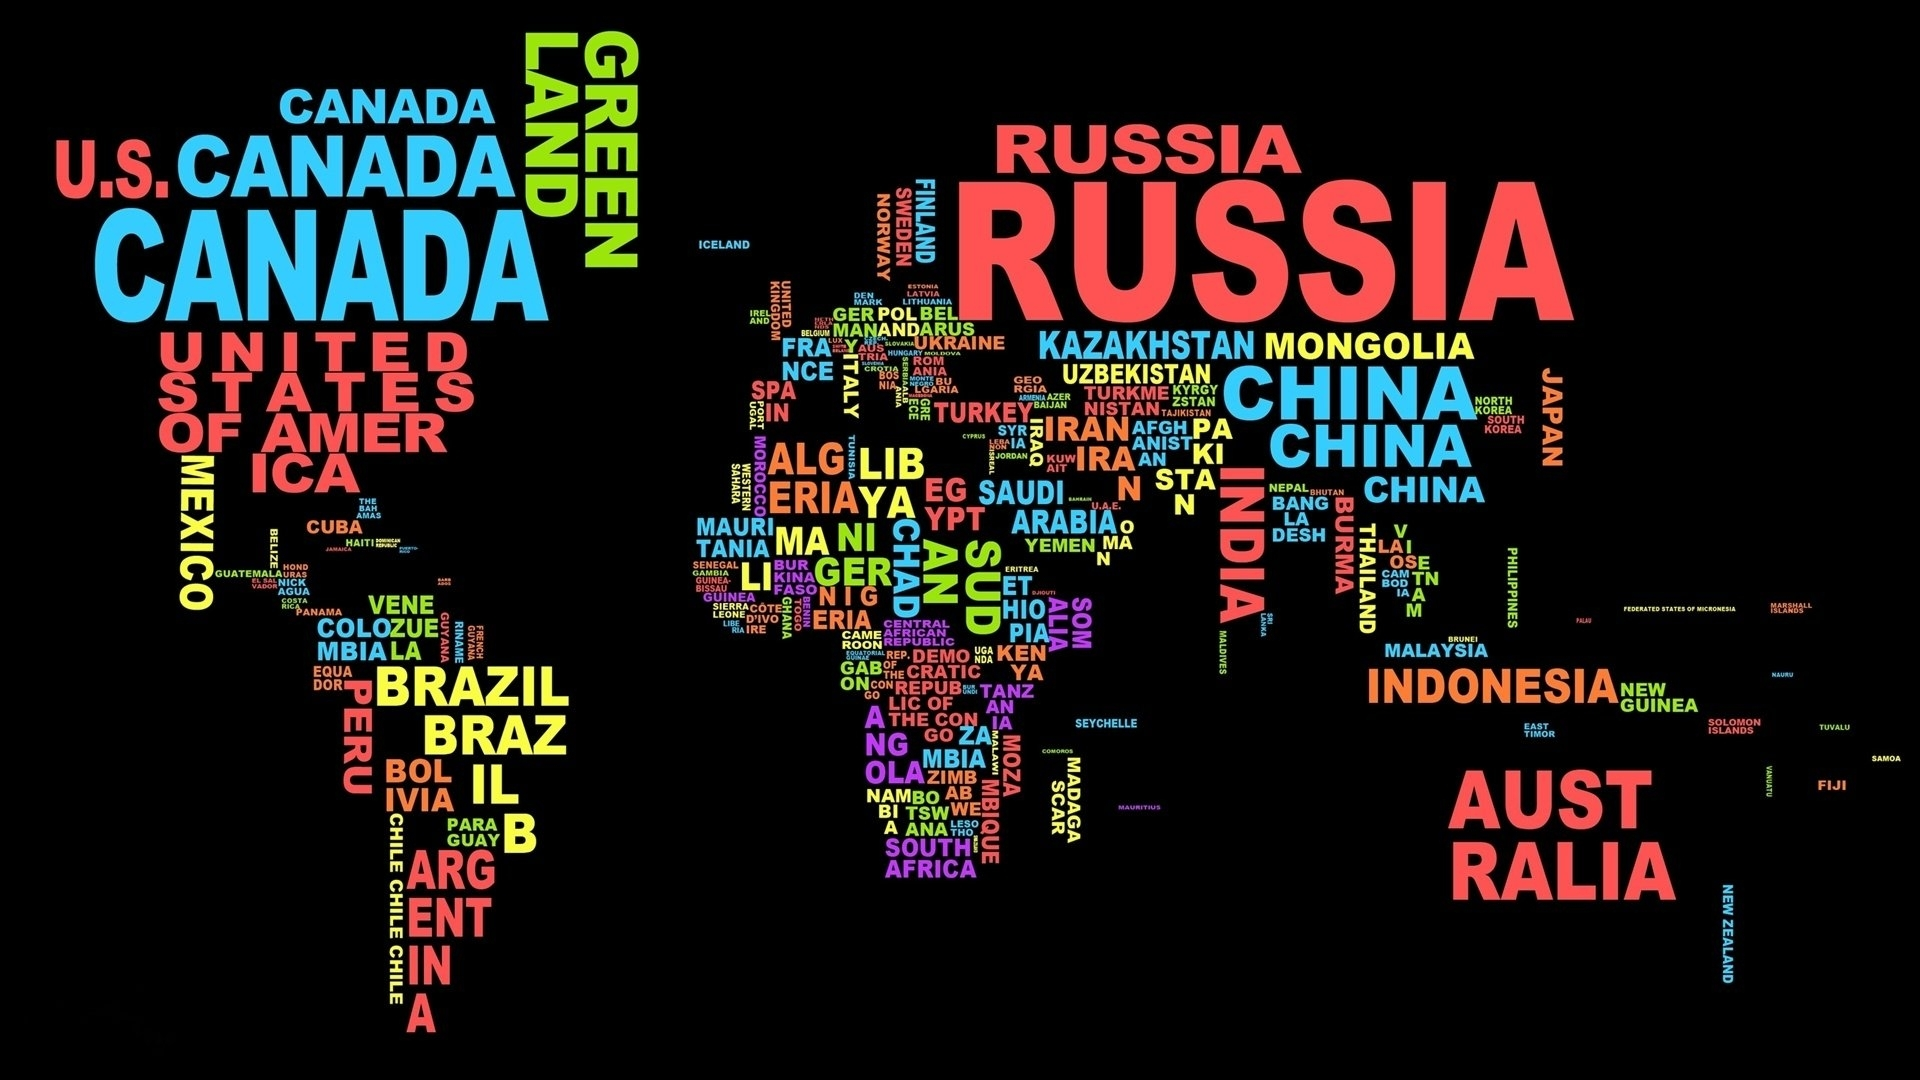 10 top world map laptop wallpaper full hd 1080p for pc desktop 10 top world map laptop wallpaper full hd 1080p for pc desktop 2018 free download 148 gumiabroncs Images